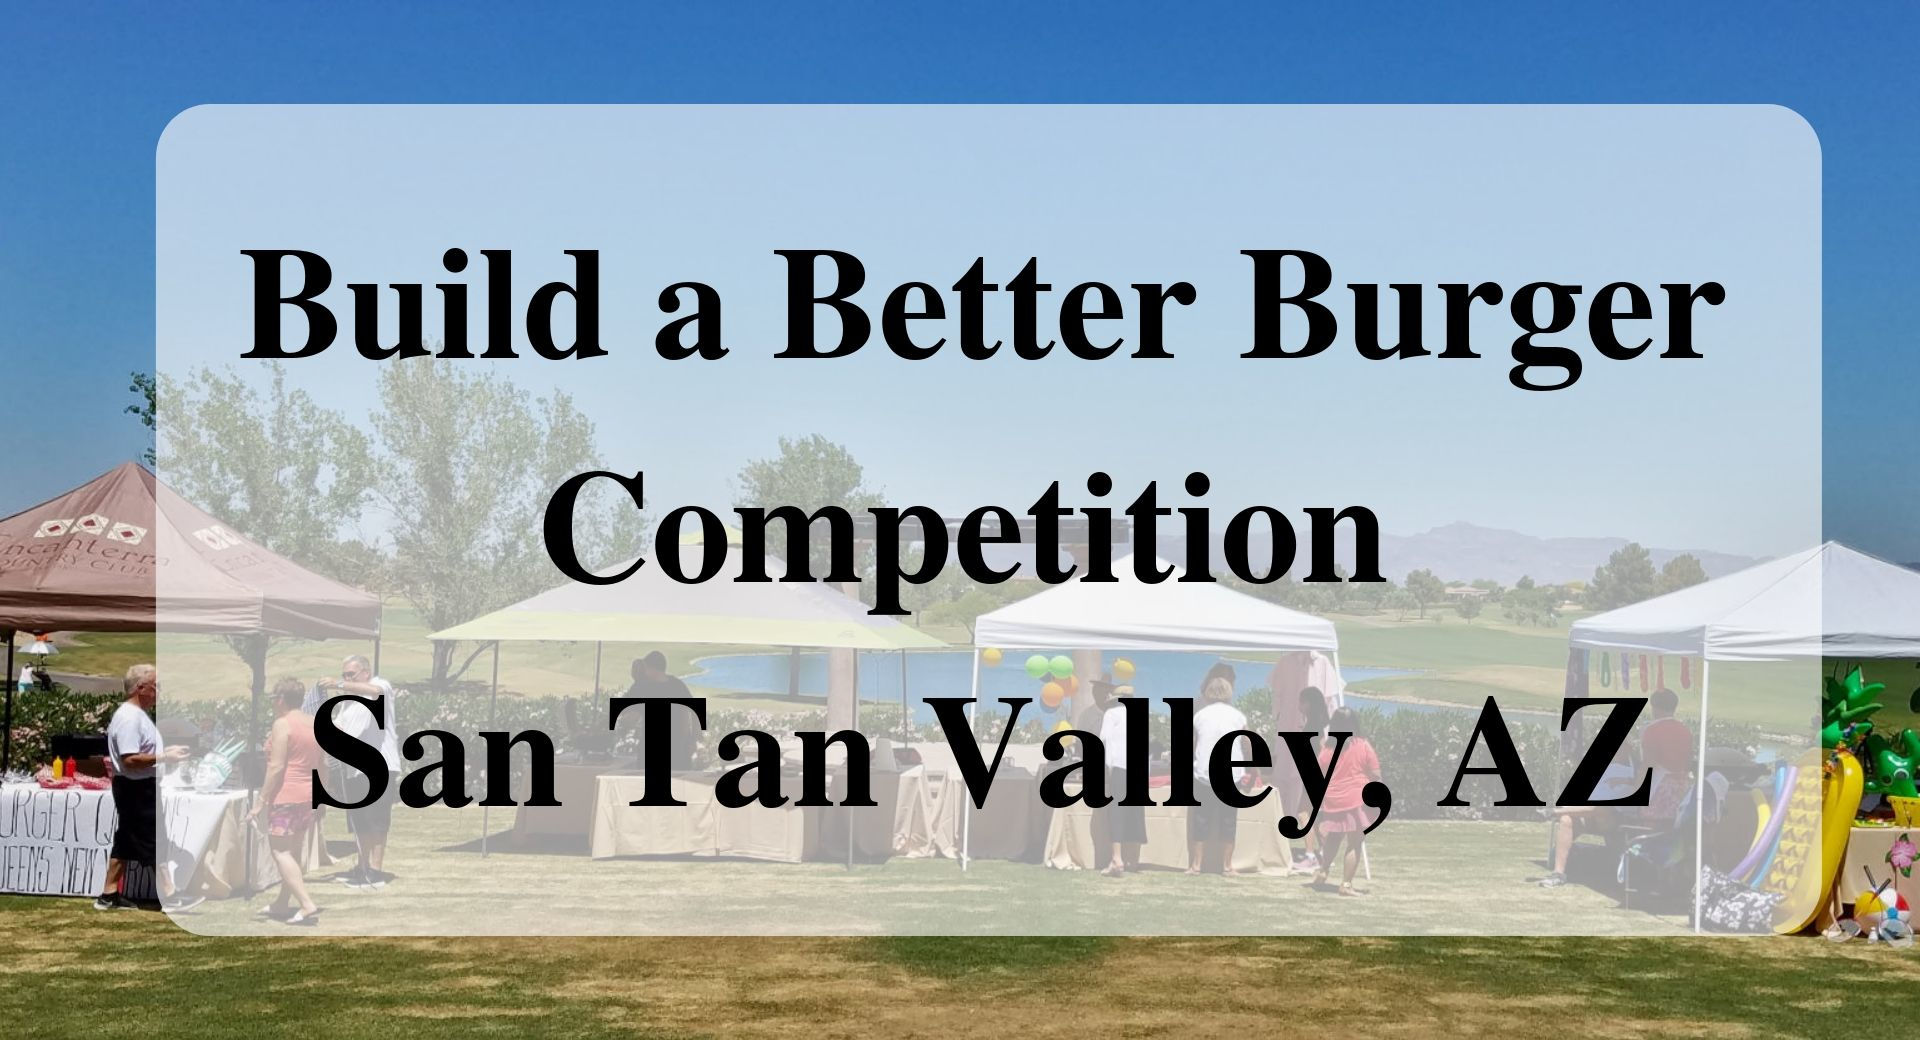 Build a Better Burger Competition San Tan Valley, AZ